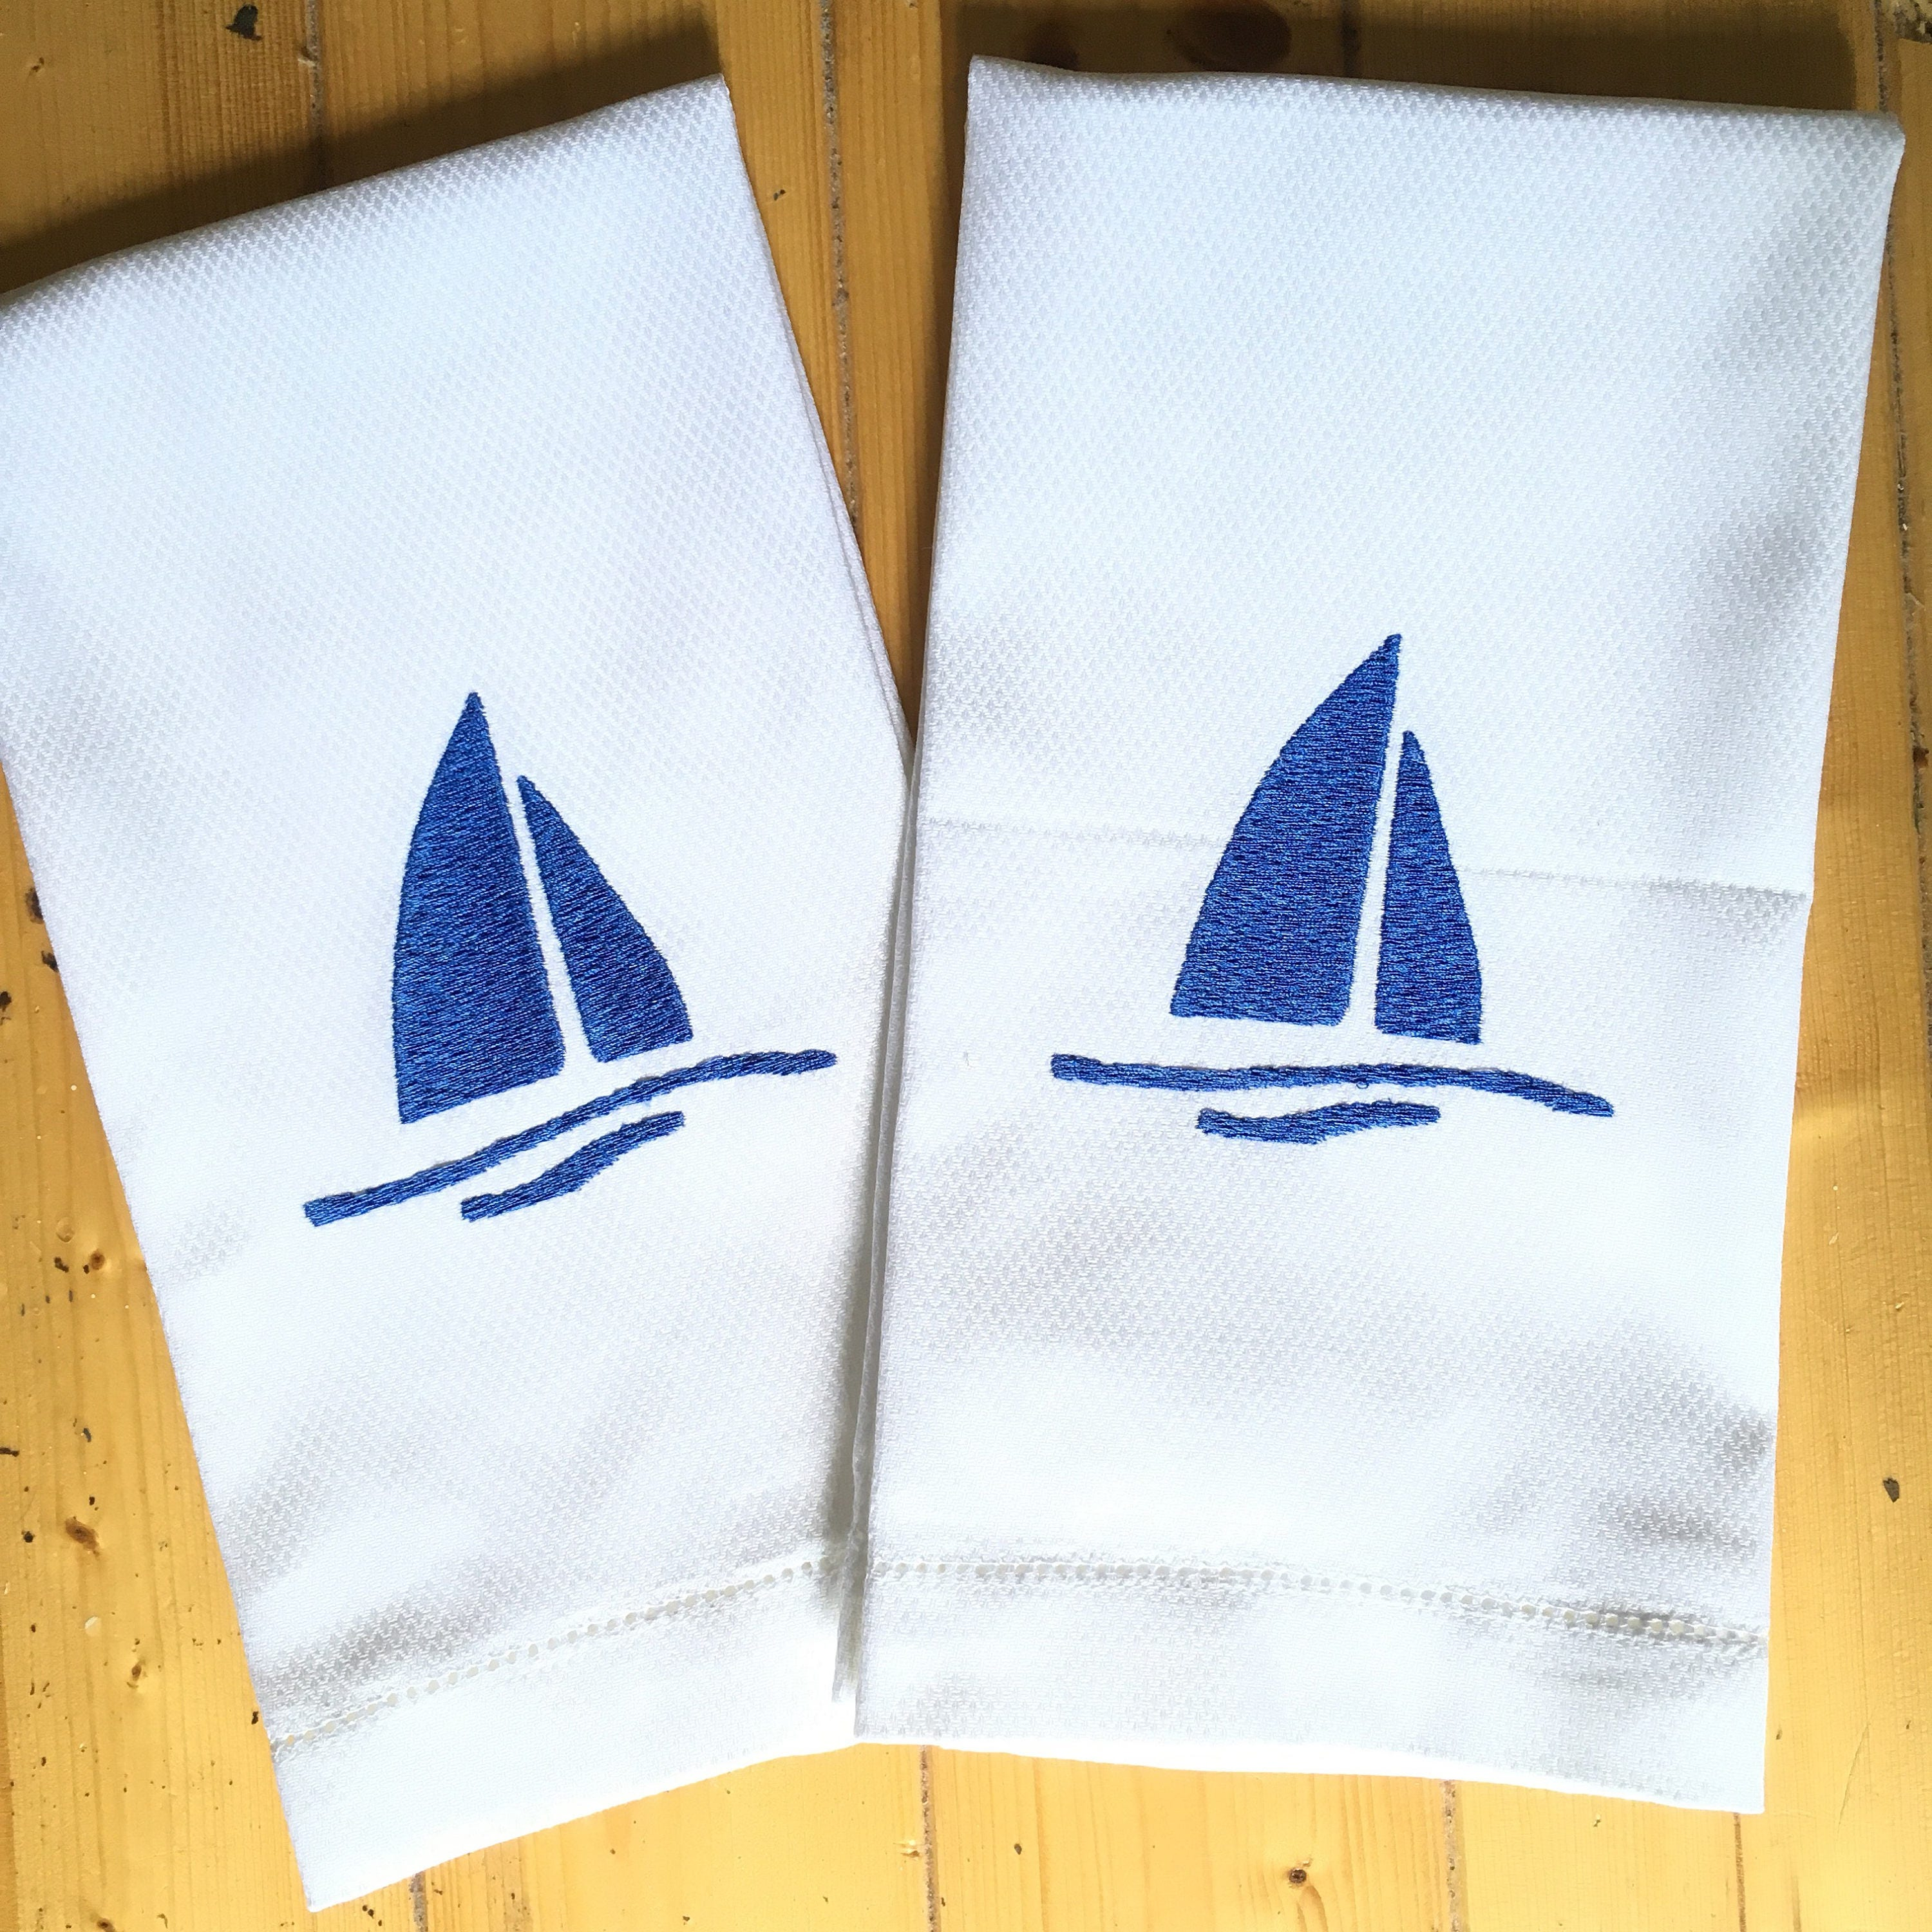 Embroidered Towels For Wedding Gift: Monogram Hand Towel With Embroidered Sailboat / Wedding Gift